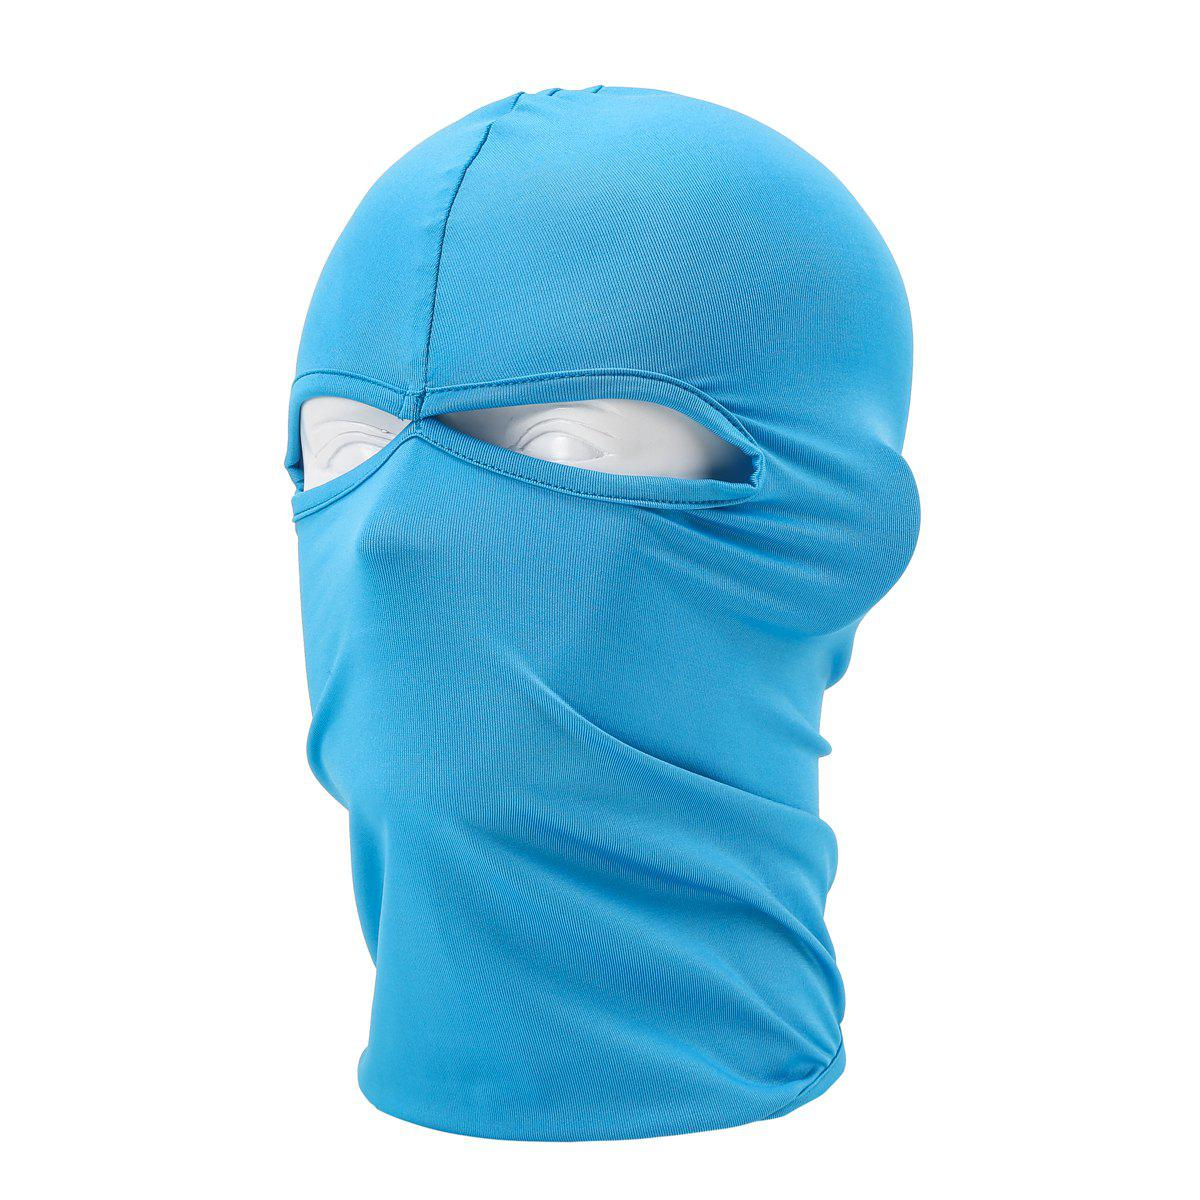 Sun Protective Wrapped Head Cap Mask with Double Orifice for Outdoor Cycling and Fishing etc.